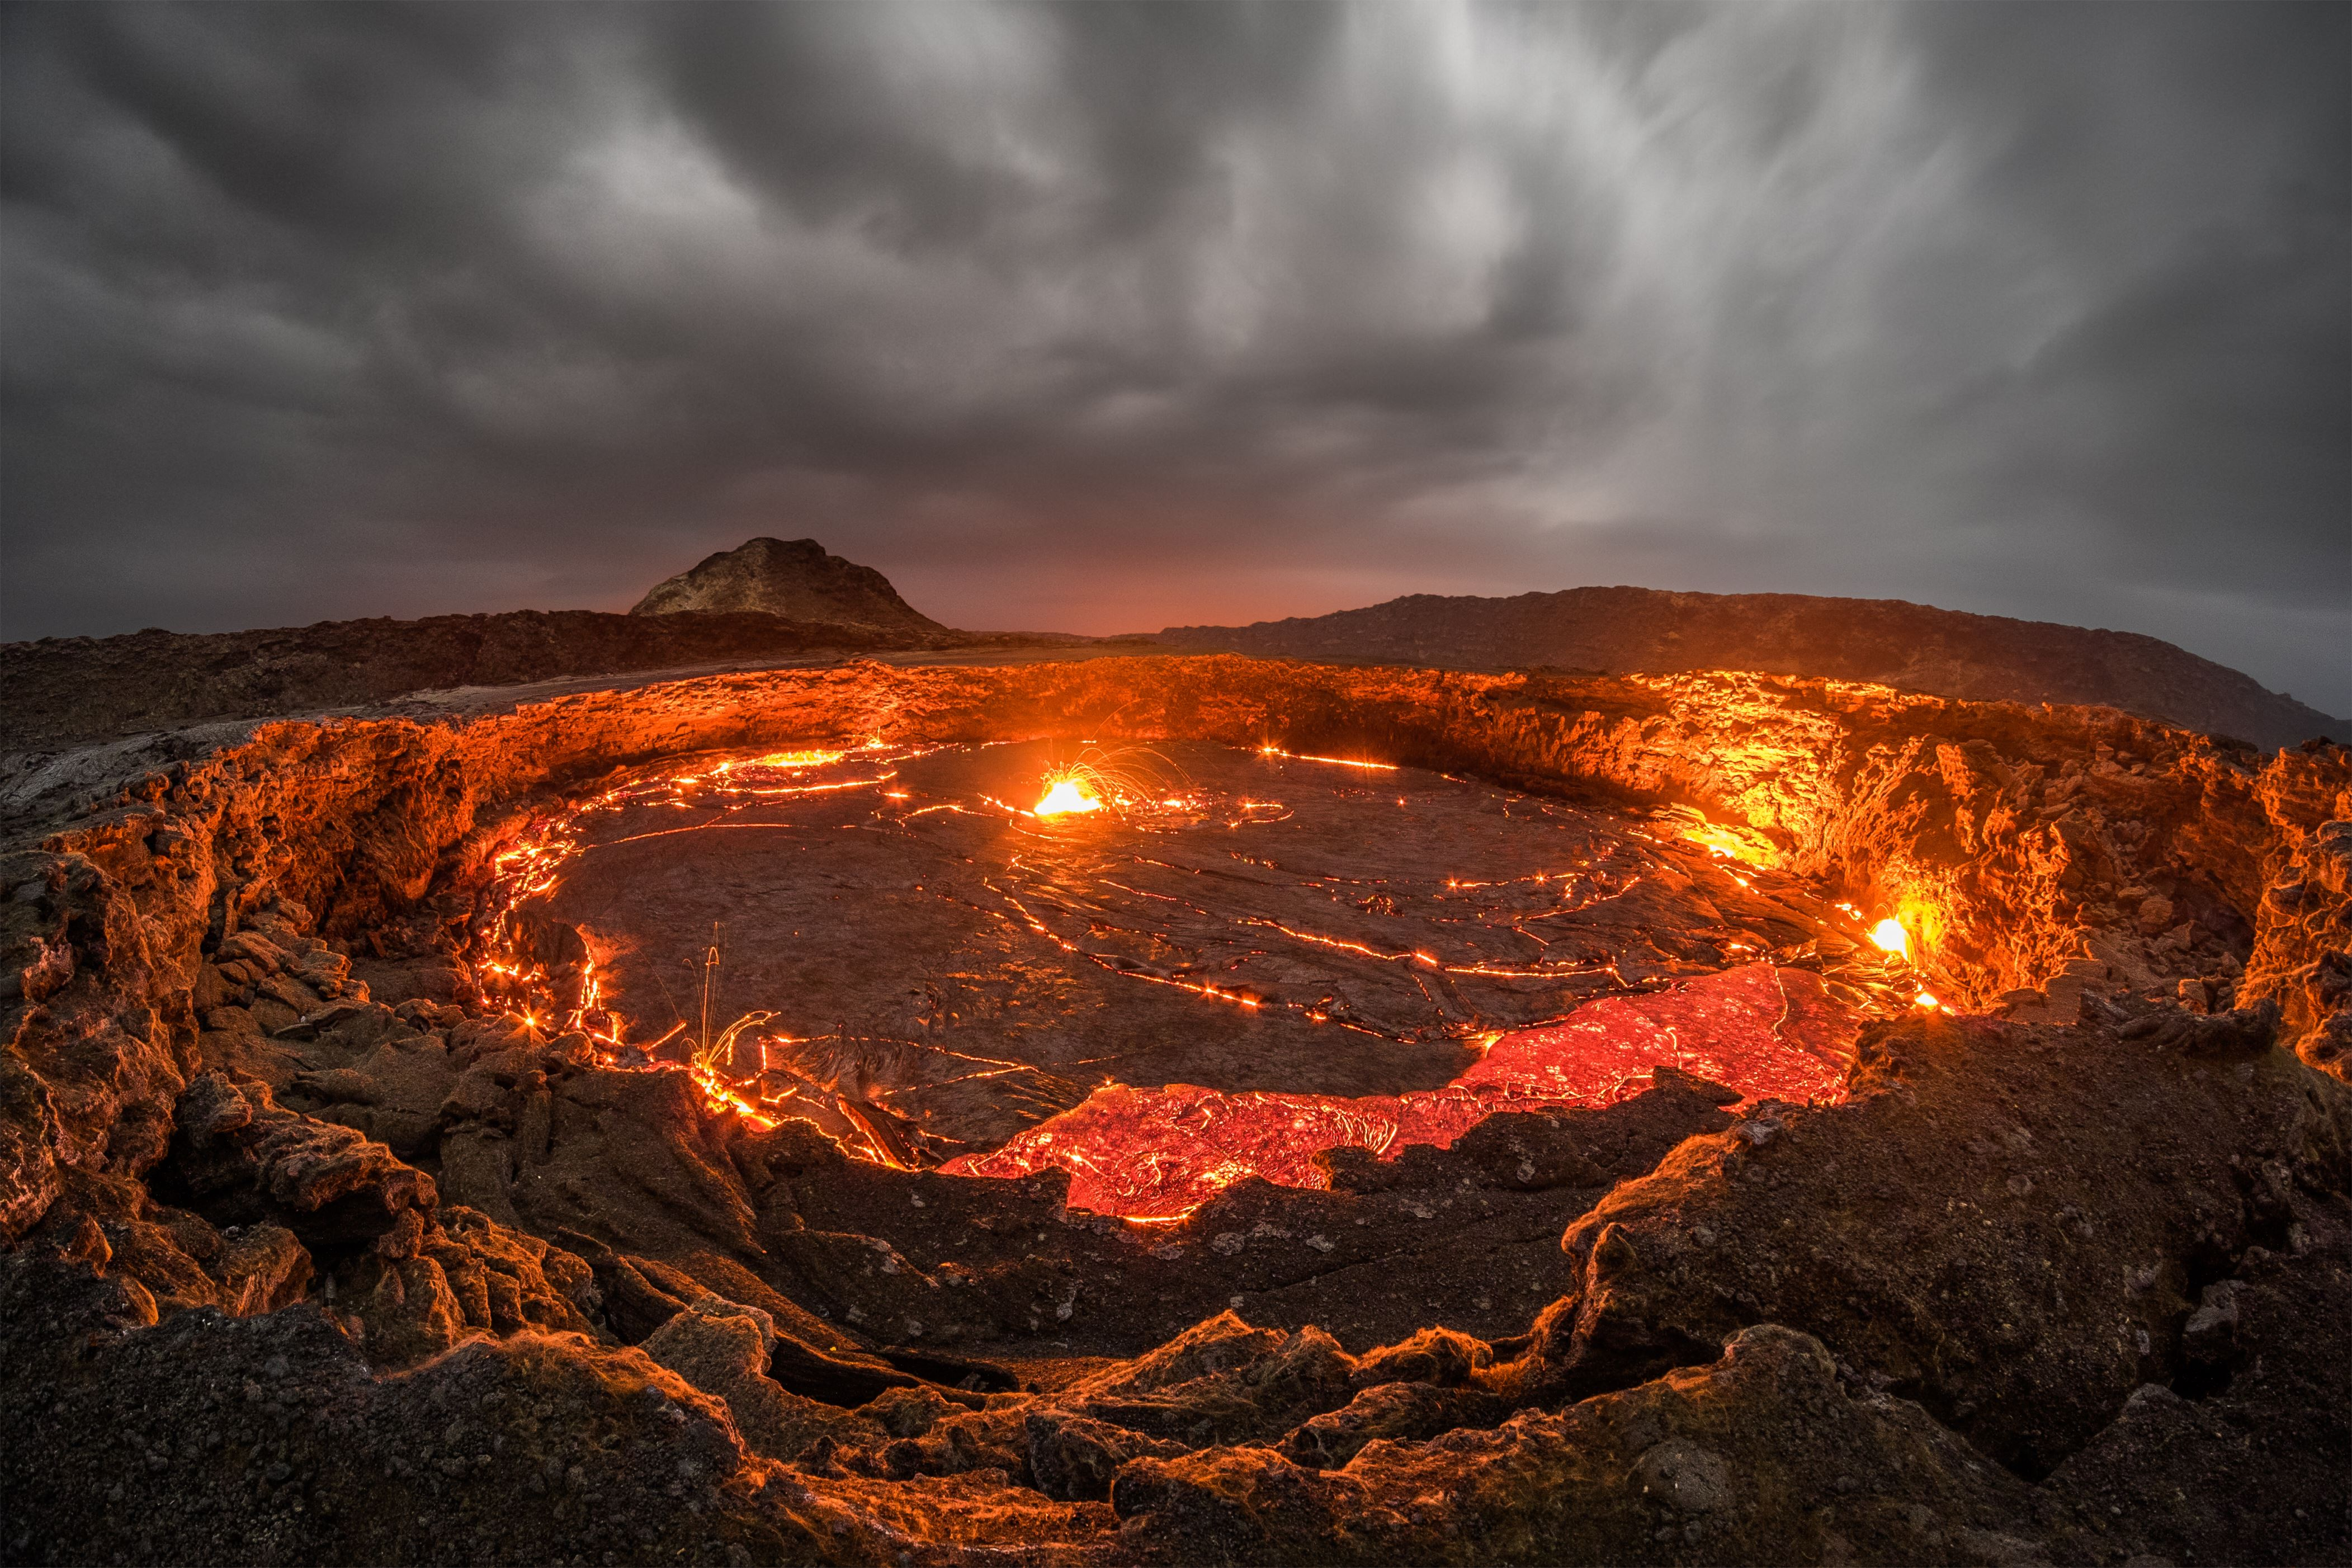 Slide 66 of 73: *** EXCLUSIVE - VIDEO AVAILABLE *** ETHIOPIA - JANUARY 10: Lava rising on top of the surface of the Erta Ale volcano lava lake on January 10, 2015 in Ethiopia. THESE fiery images offer a glimpse inside the 'Gateway To Hell' - the worlds oldest continuously active lava lake. Travel photographer Joel Santos, 38, piloted a drone low over the bubbling lake, which reaches temperatures exceeding 1,100 degrees celsius. The lake, which has had a continuous flow since 1906, is situated inside the Erta Ale volcano, otherwise known as Smoking Mountain, in the Afar region of northeastern Ethiopia. The volcanos last major eruption occurred in 2005, killing 250 livestock and forcing thousands of nearby residents to flee. And the Portuguese photographer remained acute aware of the hazards posed by filming such a potentially devastating natural phenomenon at such close quarters. PHOTOGRAPH BY Joel Santos / Barcroft Images London-T:+44 207 033 1031 E:hello@barcroftmedia.com - New York-T:+1 212 796 2458 E:hello@barcroftusa.com - New Delhi-T:+91 11 4053 2429 E:hello@barcroftindia.com www.barcroftimages.com (Photo credit should read Joel Santos / Barcroft Images / Barcroft Media via Getty Images)